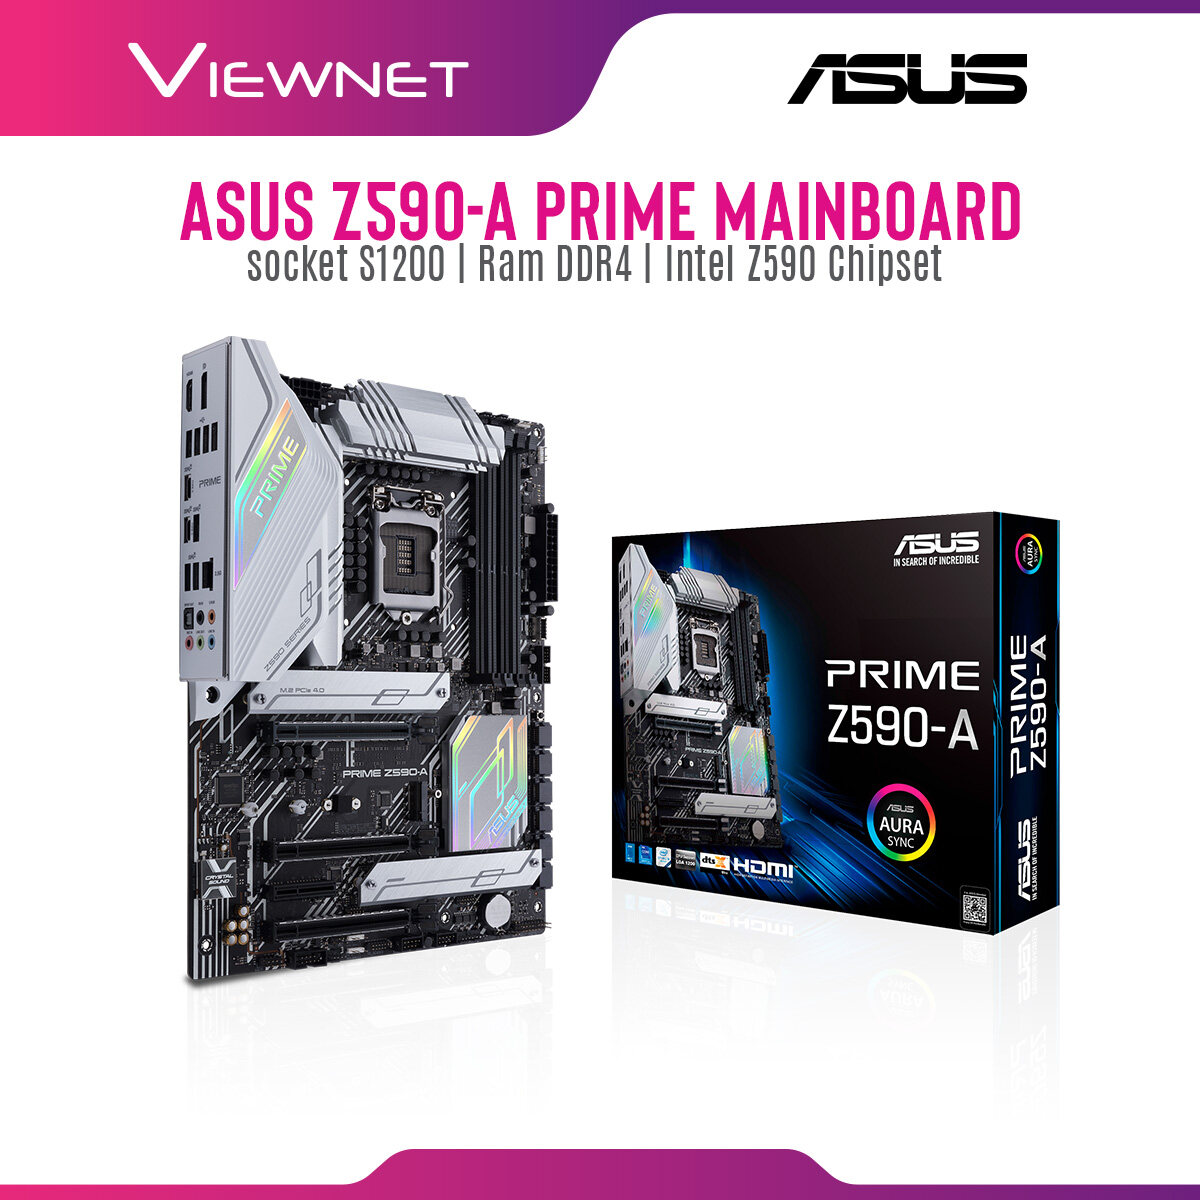 Asus Z590-A Prime Mainboard Intel® Z590 (LGA 1200) ATX motherboard three M.2 slots front panel USB 3.2 Gen 1 Type-C®, Thunderbolt™ 4 support, and Aura Sync RGB lighting